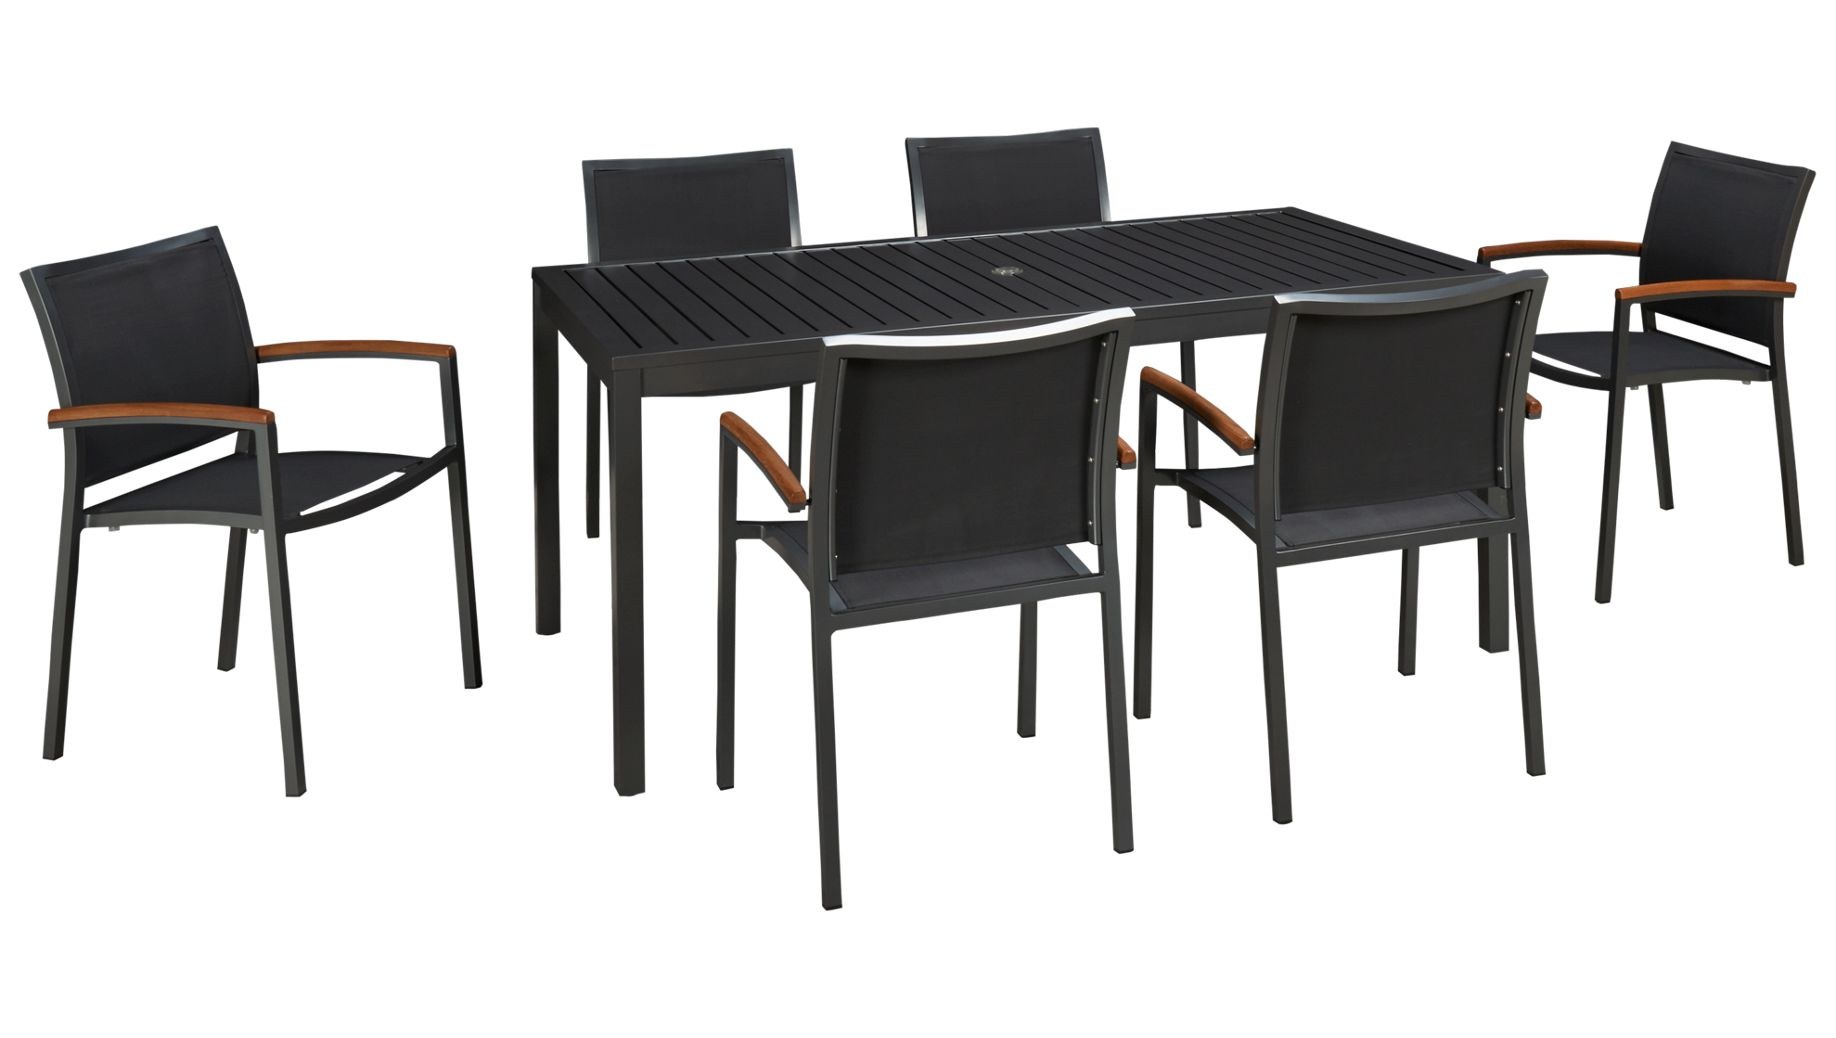 Outdoor dining furniture outdoor dining sets lloyd flanders dining - Lloyd Flanders Lux 7 Piece Outdoor Dining Set